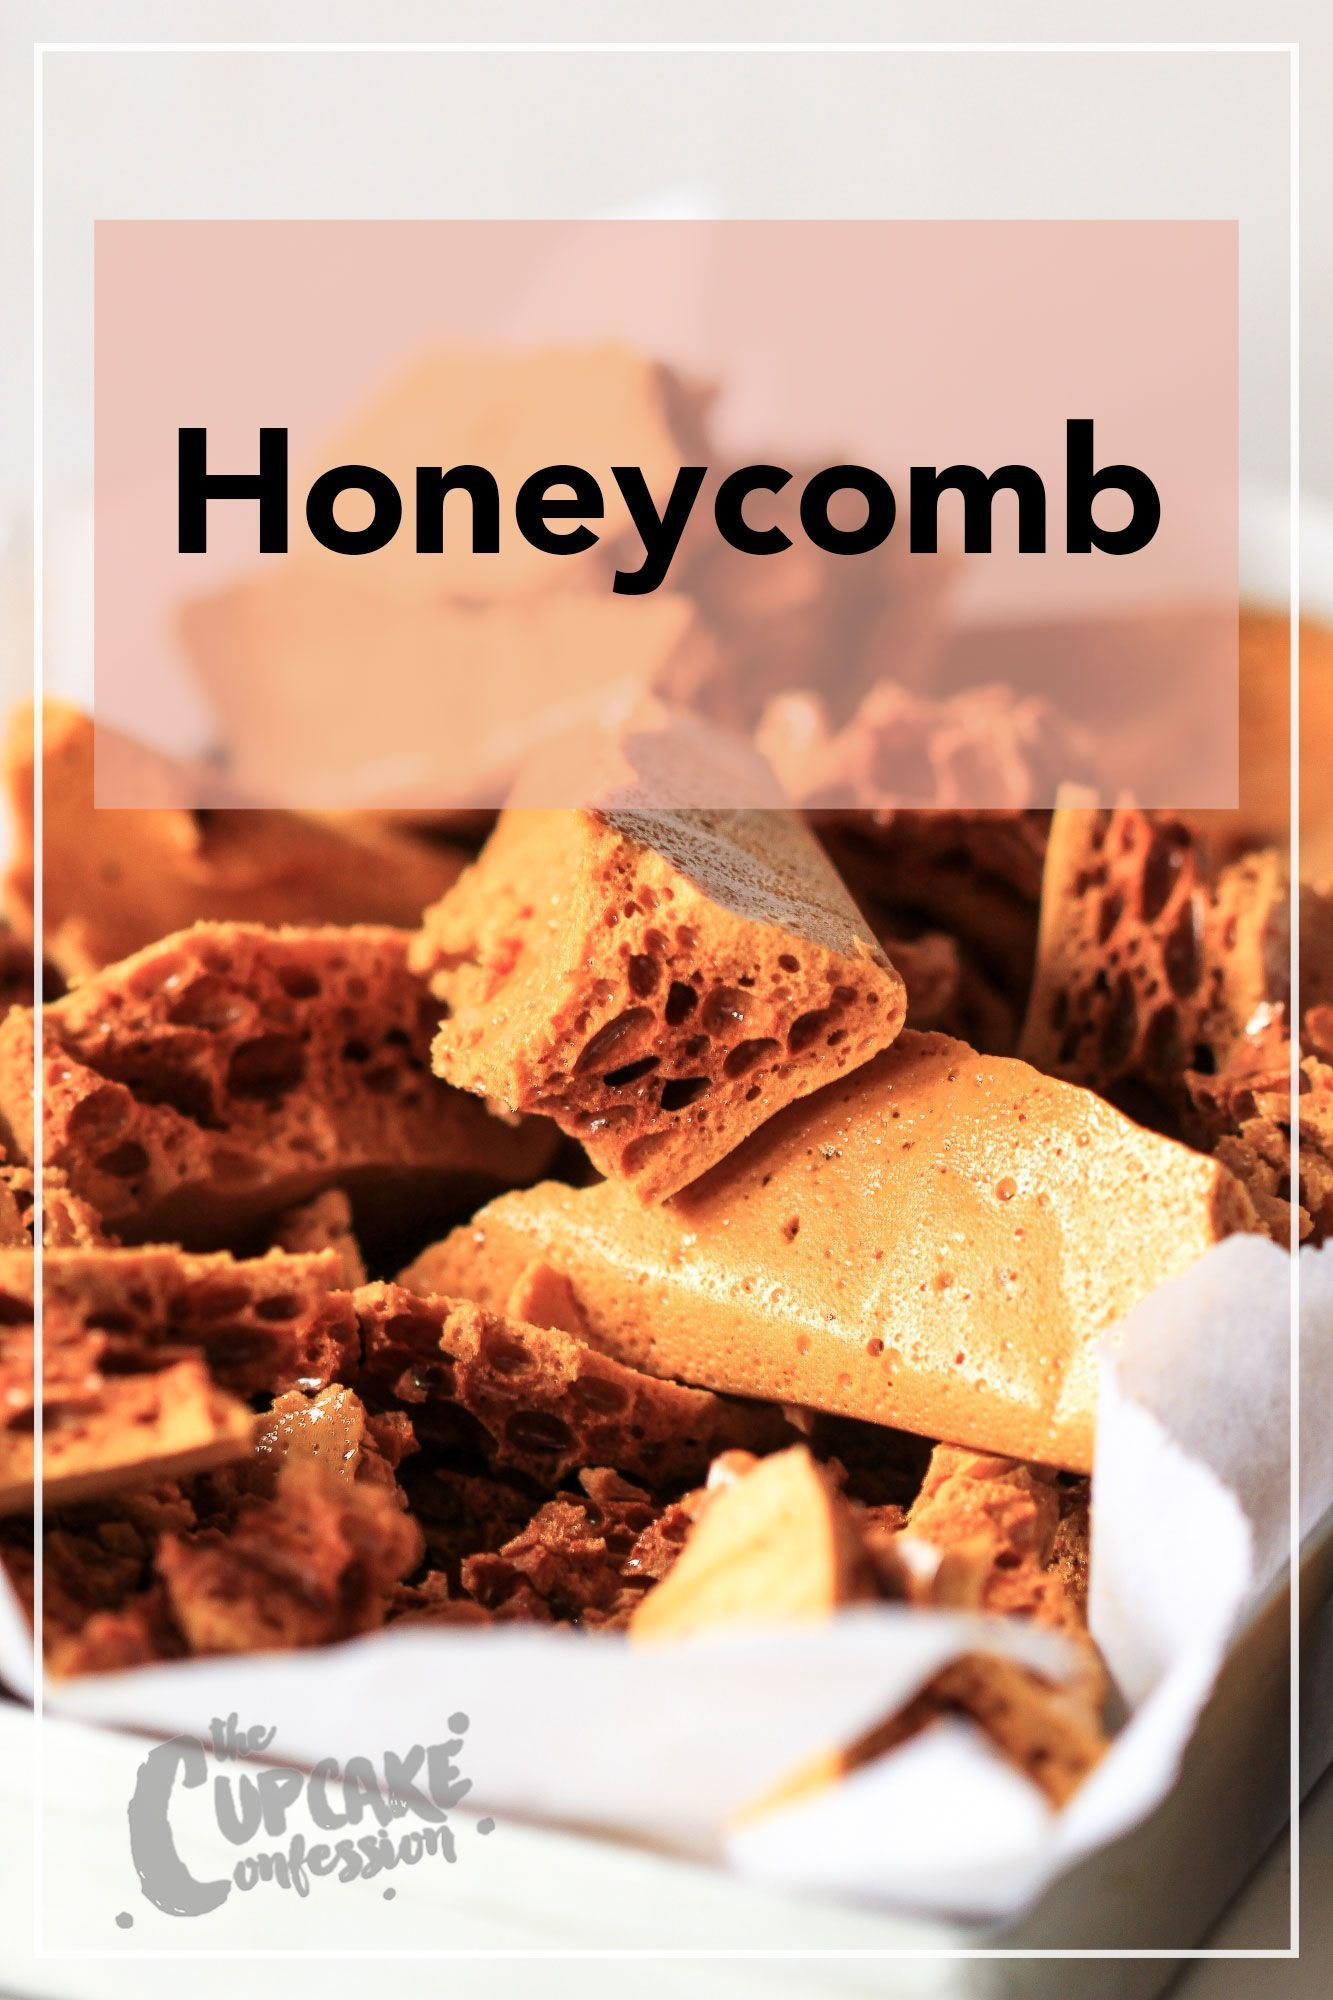 Honeycomb Candy #honeycombcandy This honeycomb candy is the perfect edible gift for Christmas. With a honeycomb like texture on the inside, they taste as good as they look. #honeycombcandy Honeycomb Candy #honeycombcandy This honeycomb candy is the perfect edible gift for Christmas. With a honeycomb like texture on the inside, they taste as good as they look. #honeycombcandy